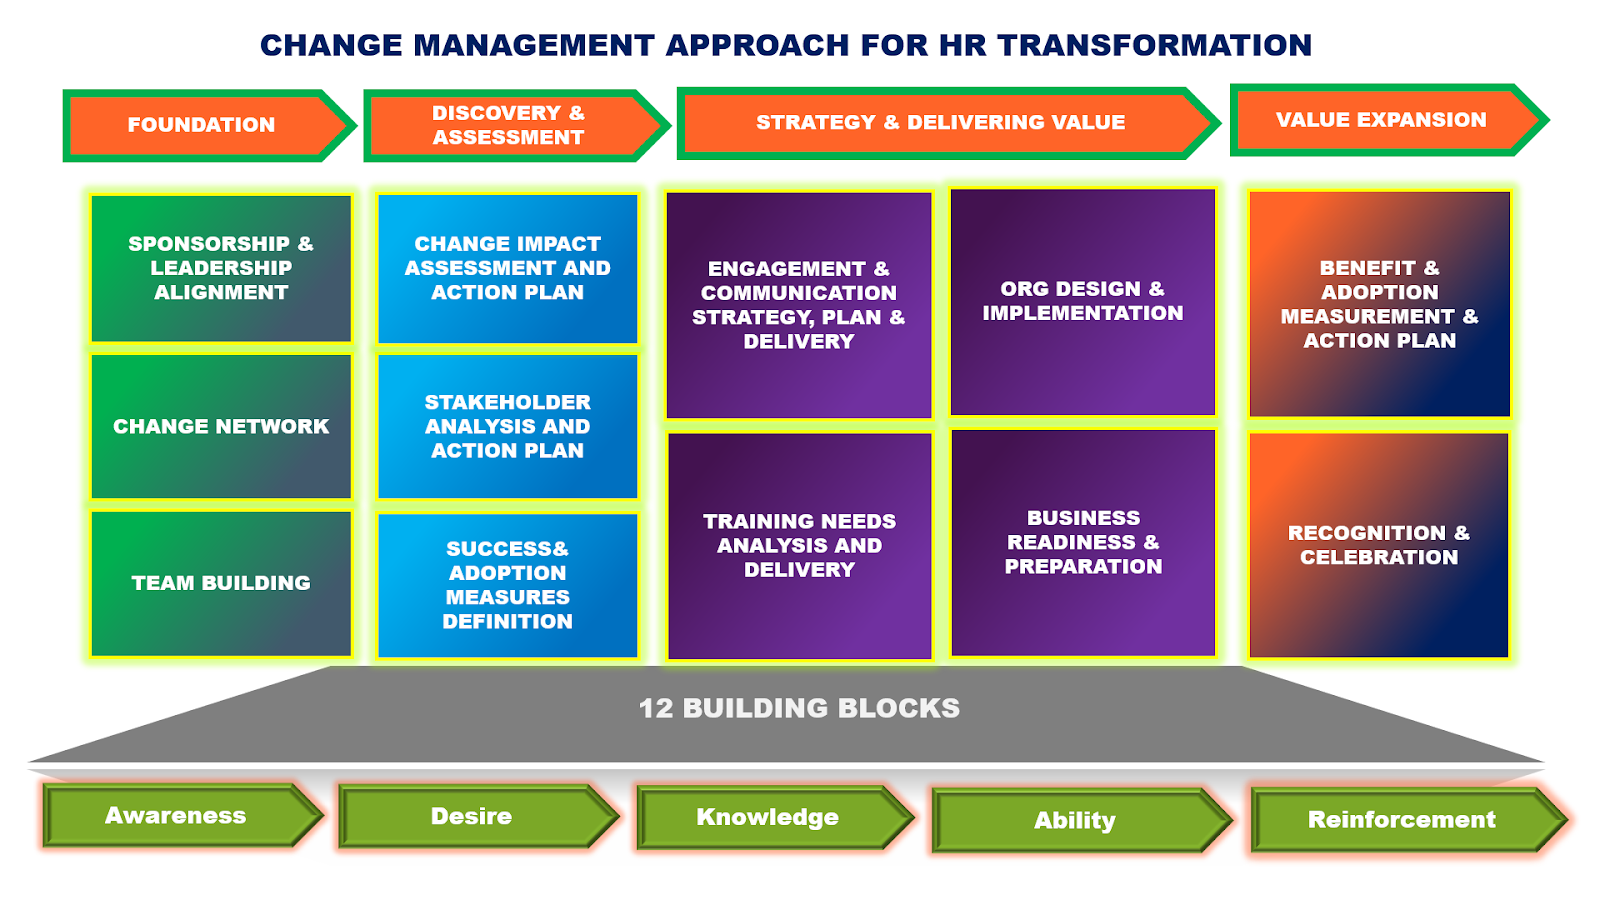 Change Management approach for strategic HR transformation programmes